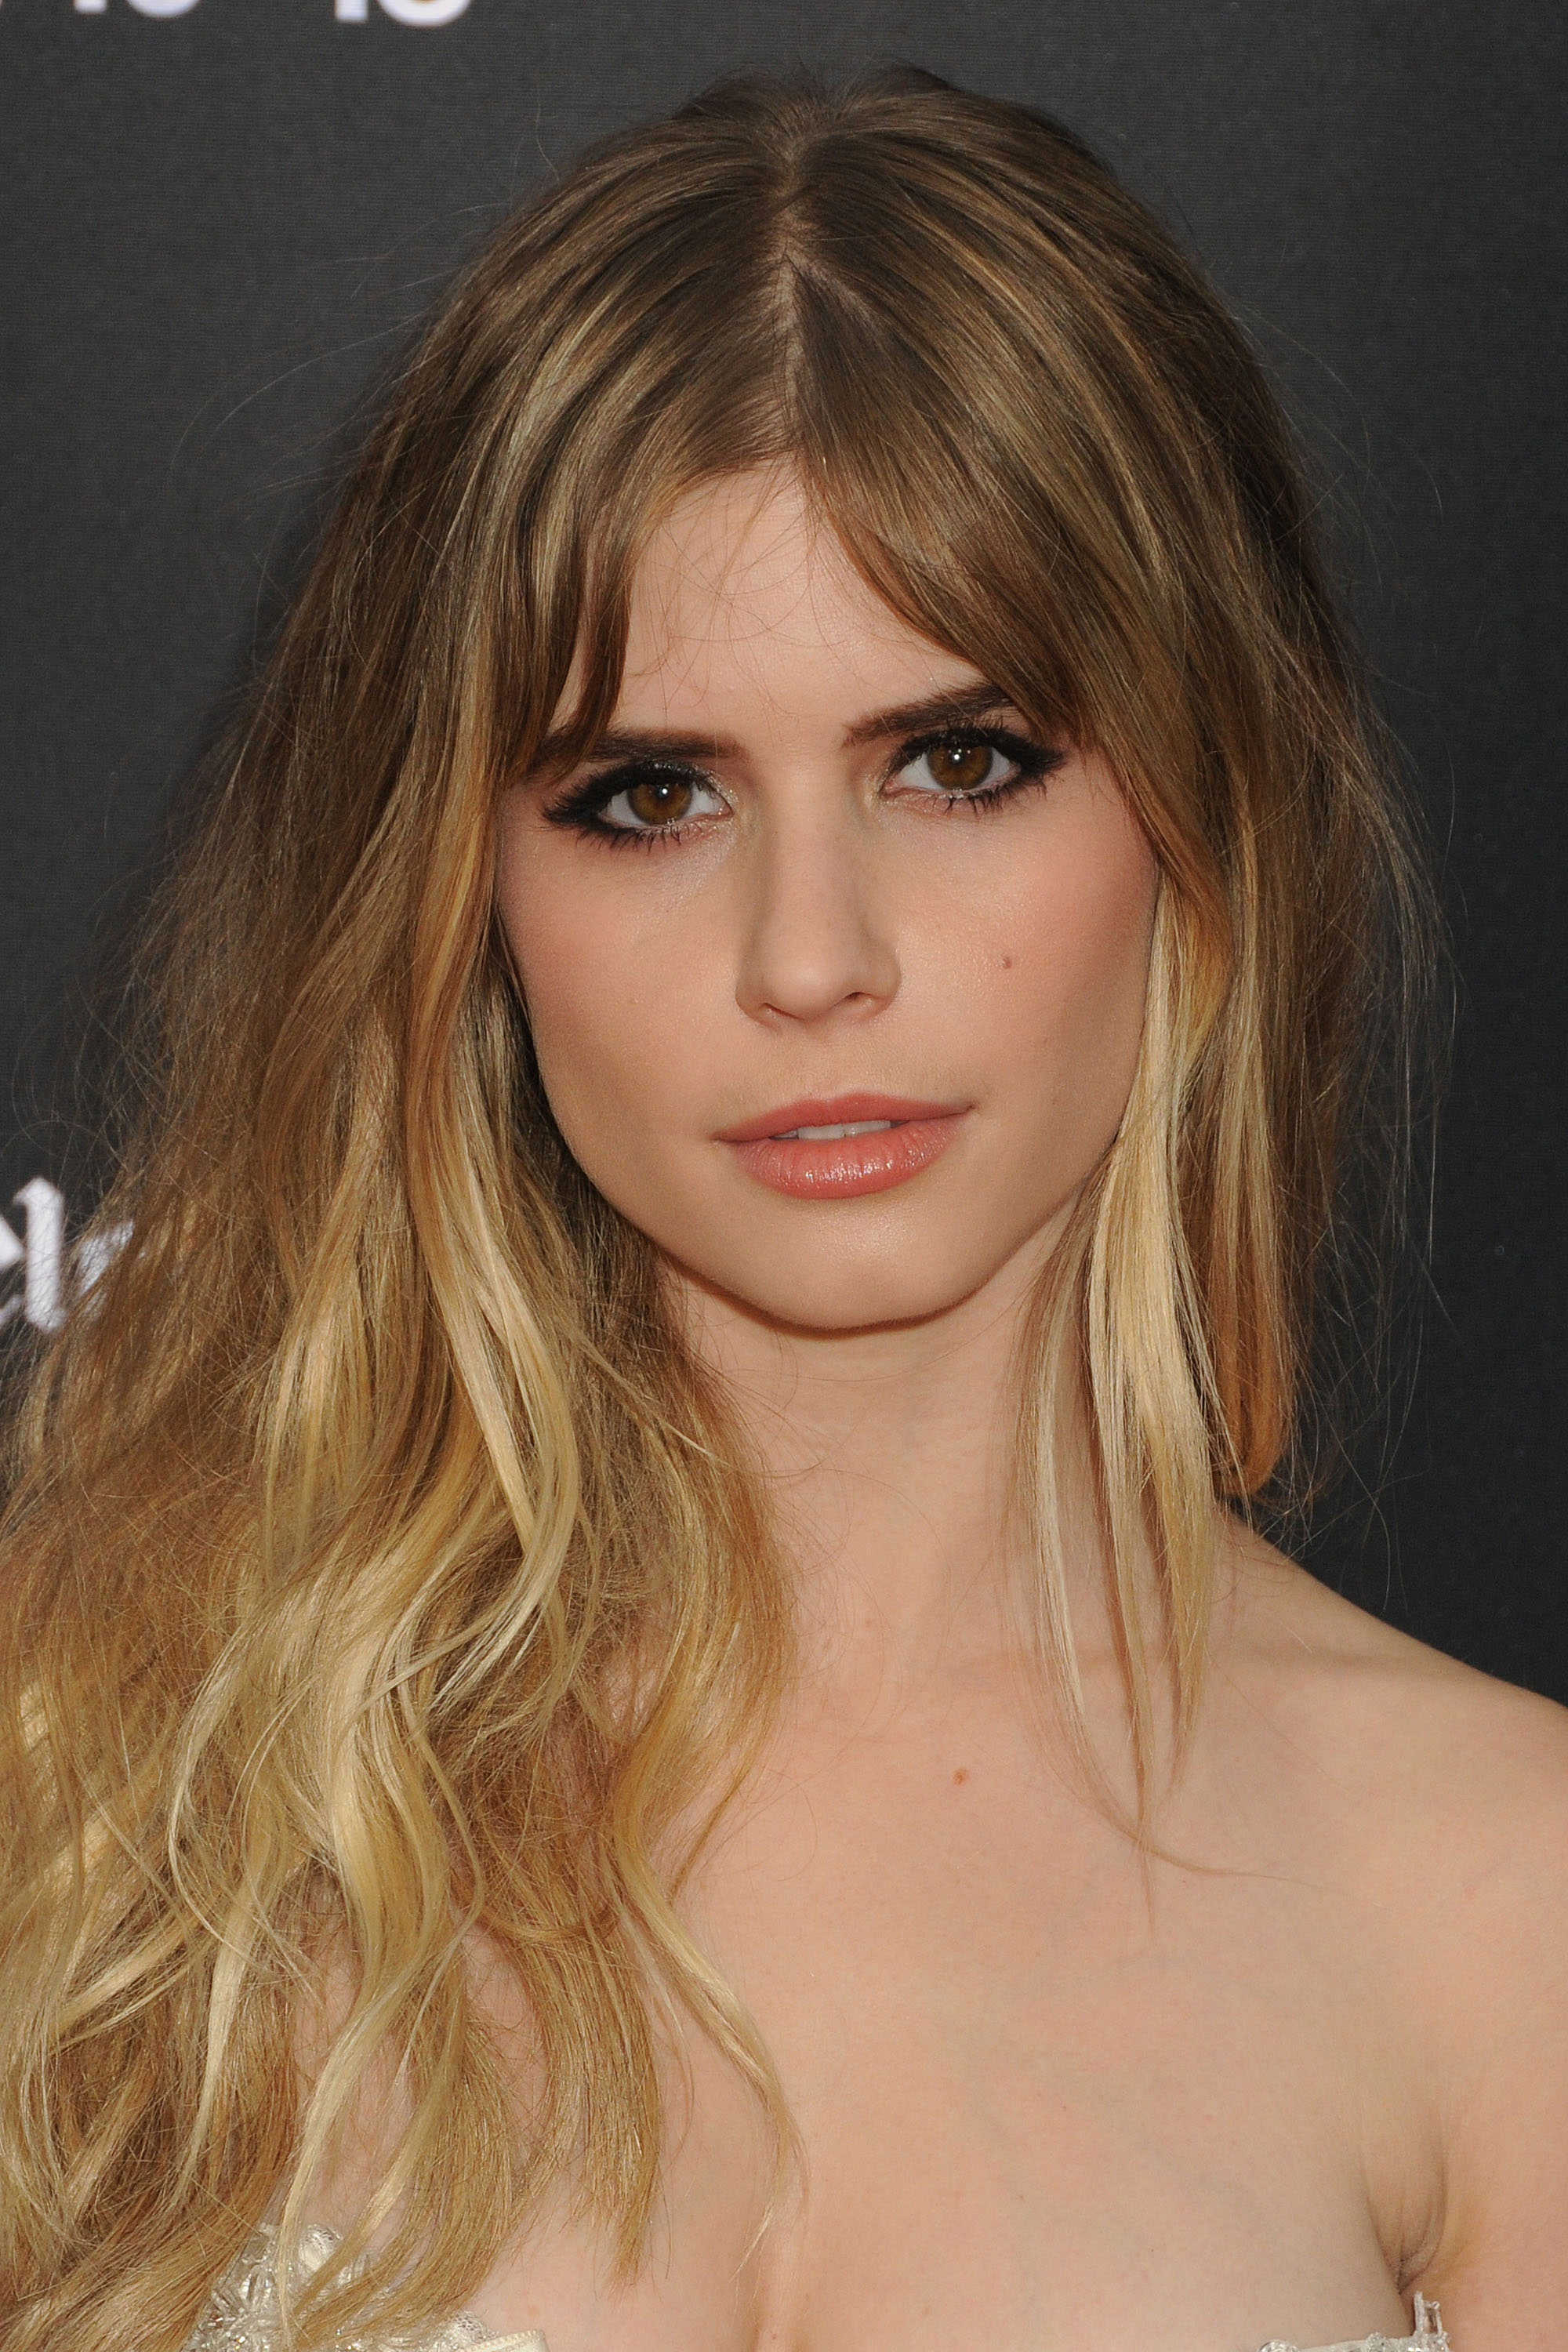 Hot Carlson Young nude (77 foto and video), Tits, Bikini, Boobs, legs 2015